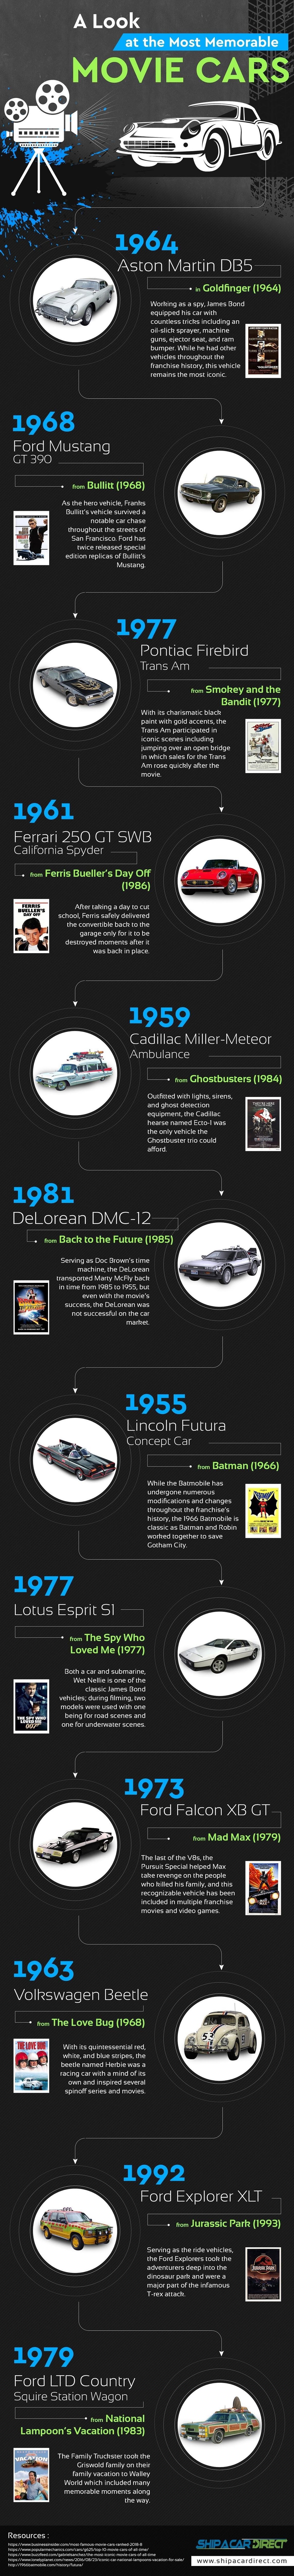 A Look at the Most Memorable Movie Cars #infographic